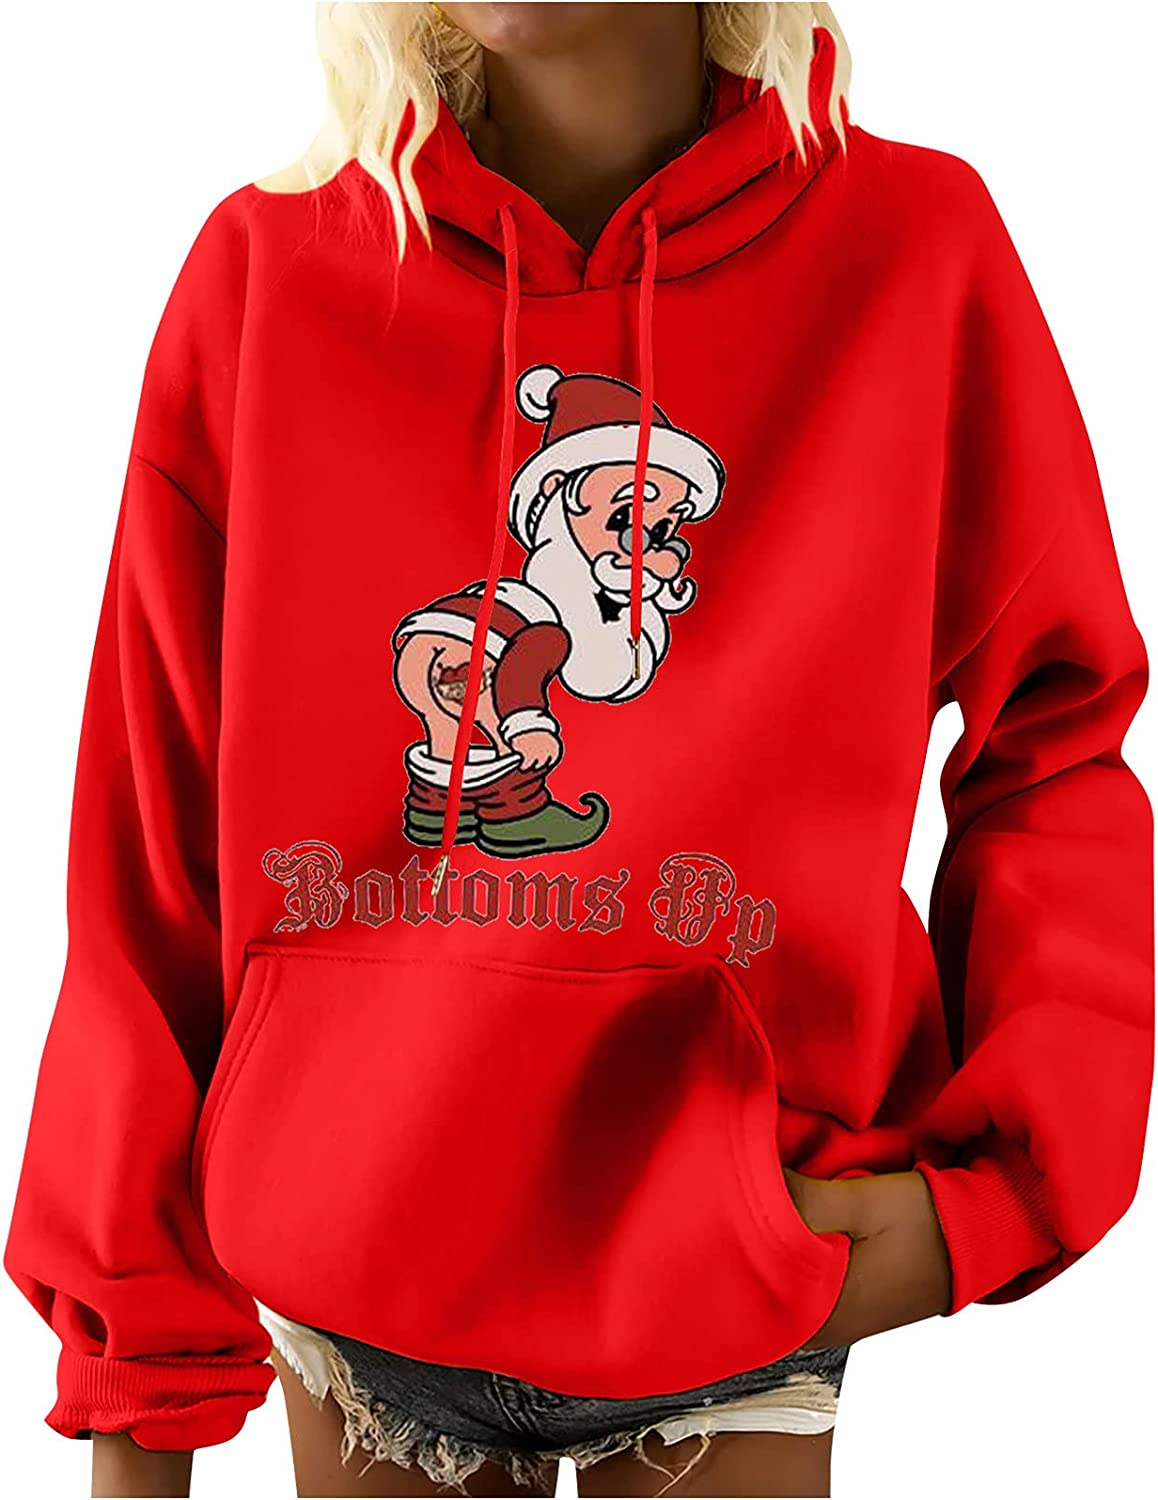 Christmas Sweatshirts for Women Buttoms Up Letter Santa Claus Print Shirt Casual Crewneck Long Sleeve Pullover Top